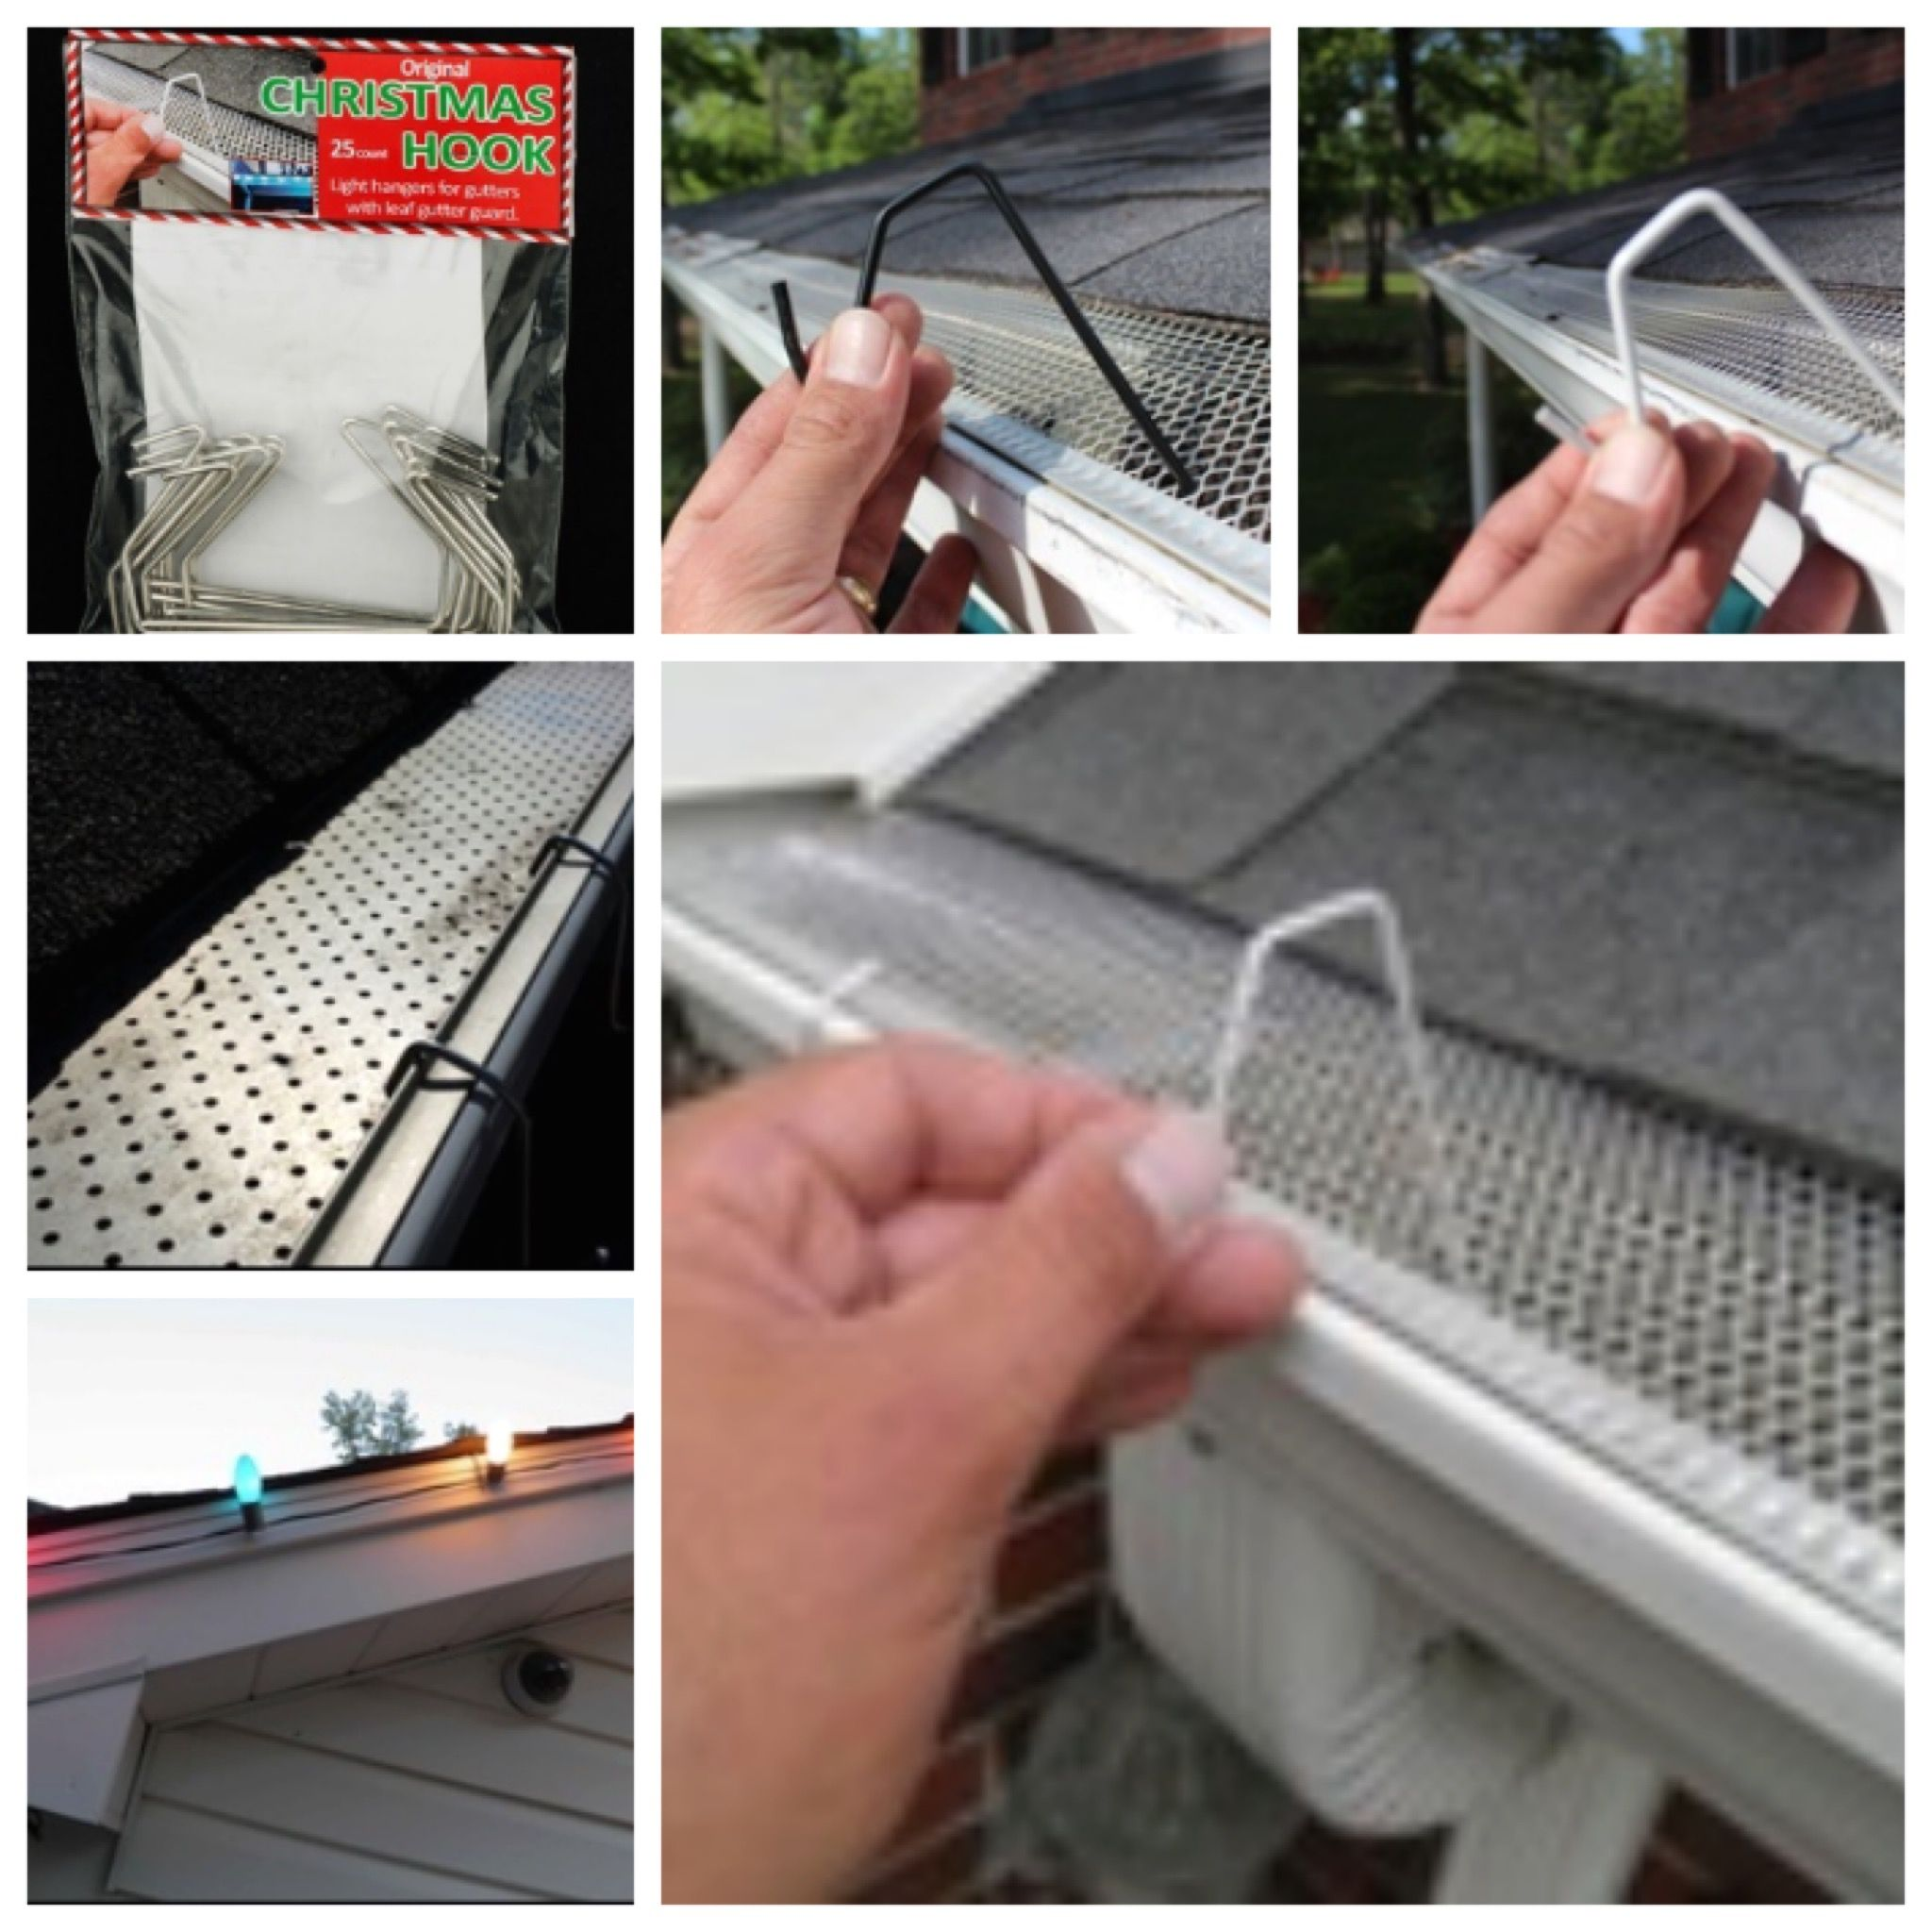 Christmas Hook Is A Christmas Light Hanger For Gutters With Mesh Or Perforated Gutter Guard Find It Christmas Light Clips Christmas Light Hanger Gutter Guard